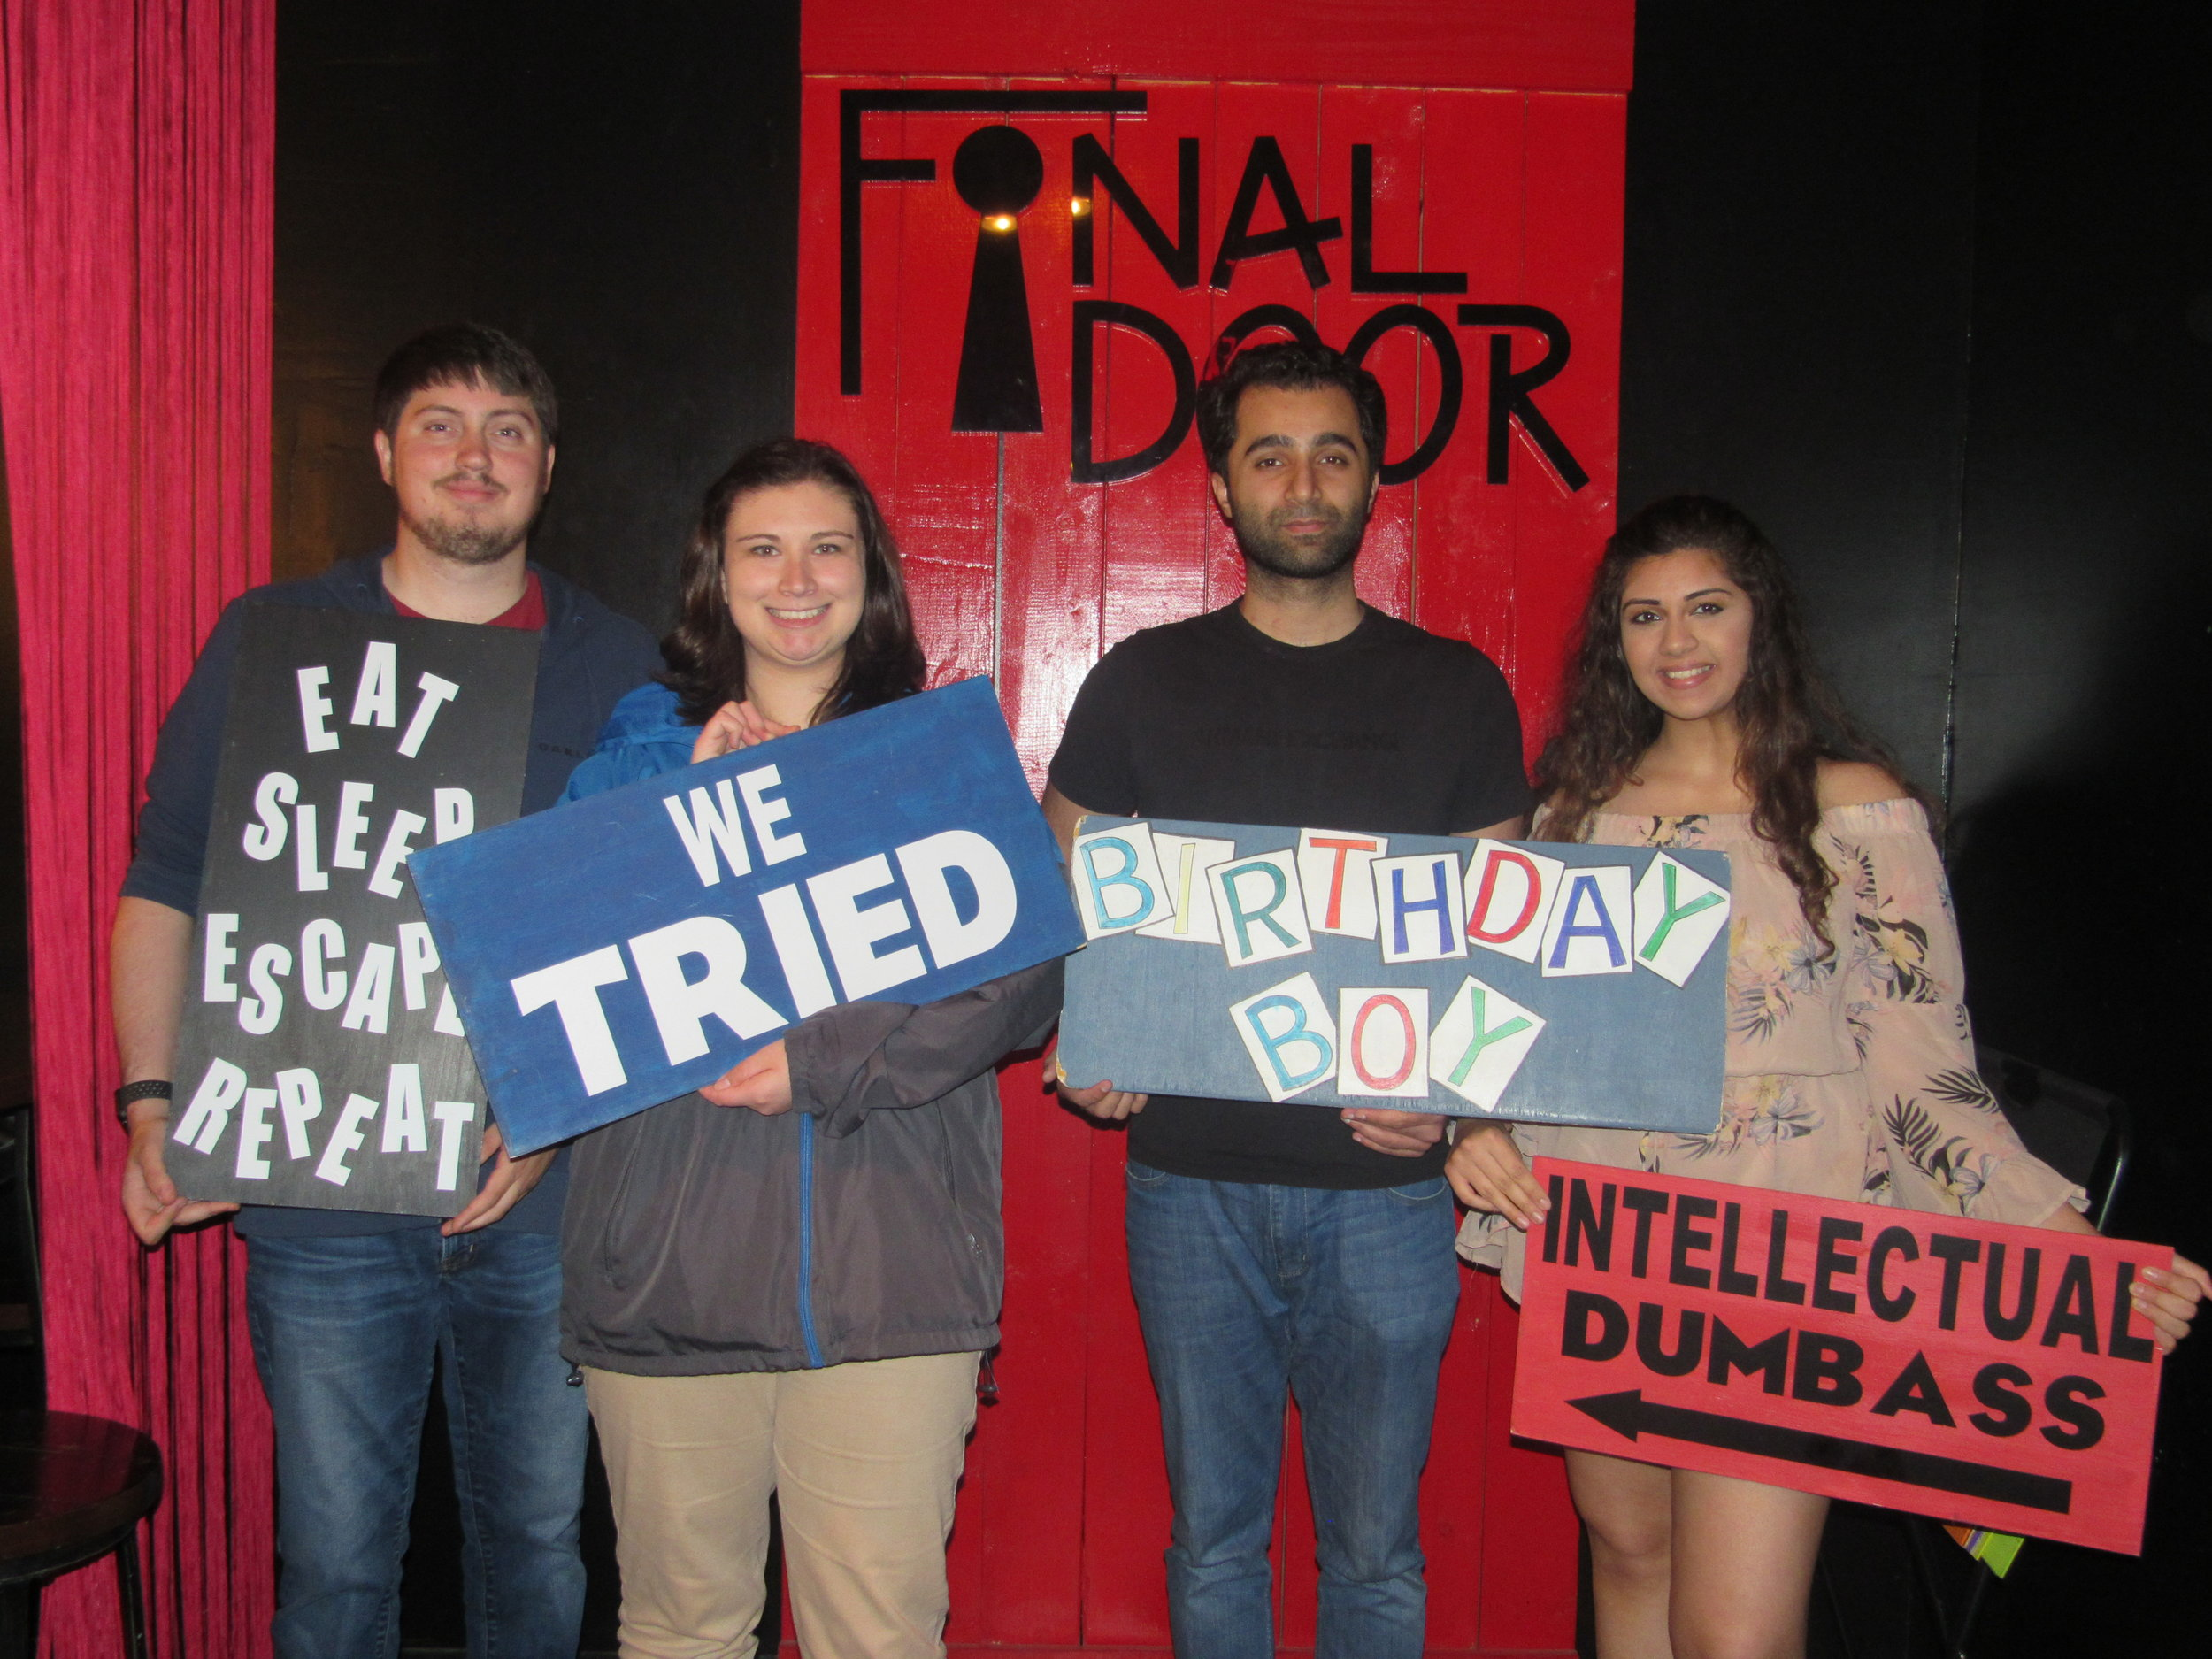 the-final-door-escape-room-columbia-sc-team-photos-apr-19-2019 (14).JPG